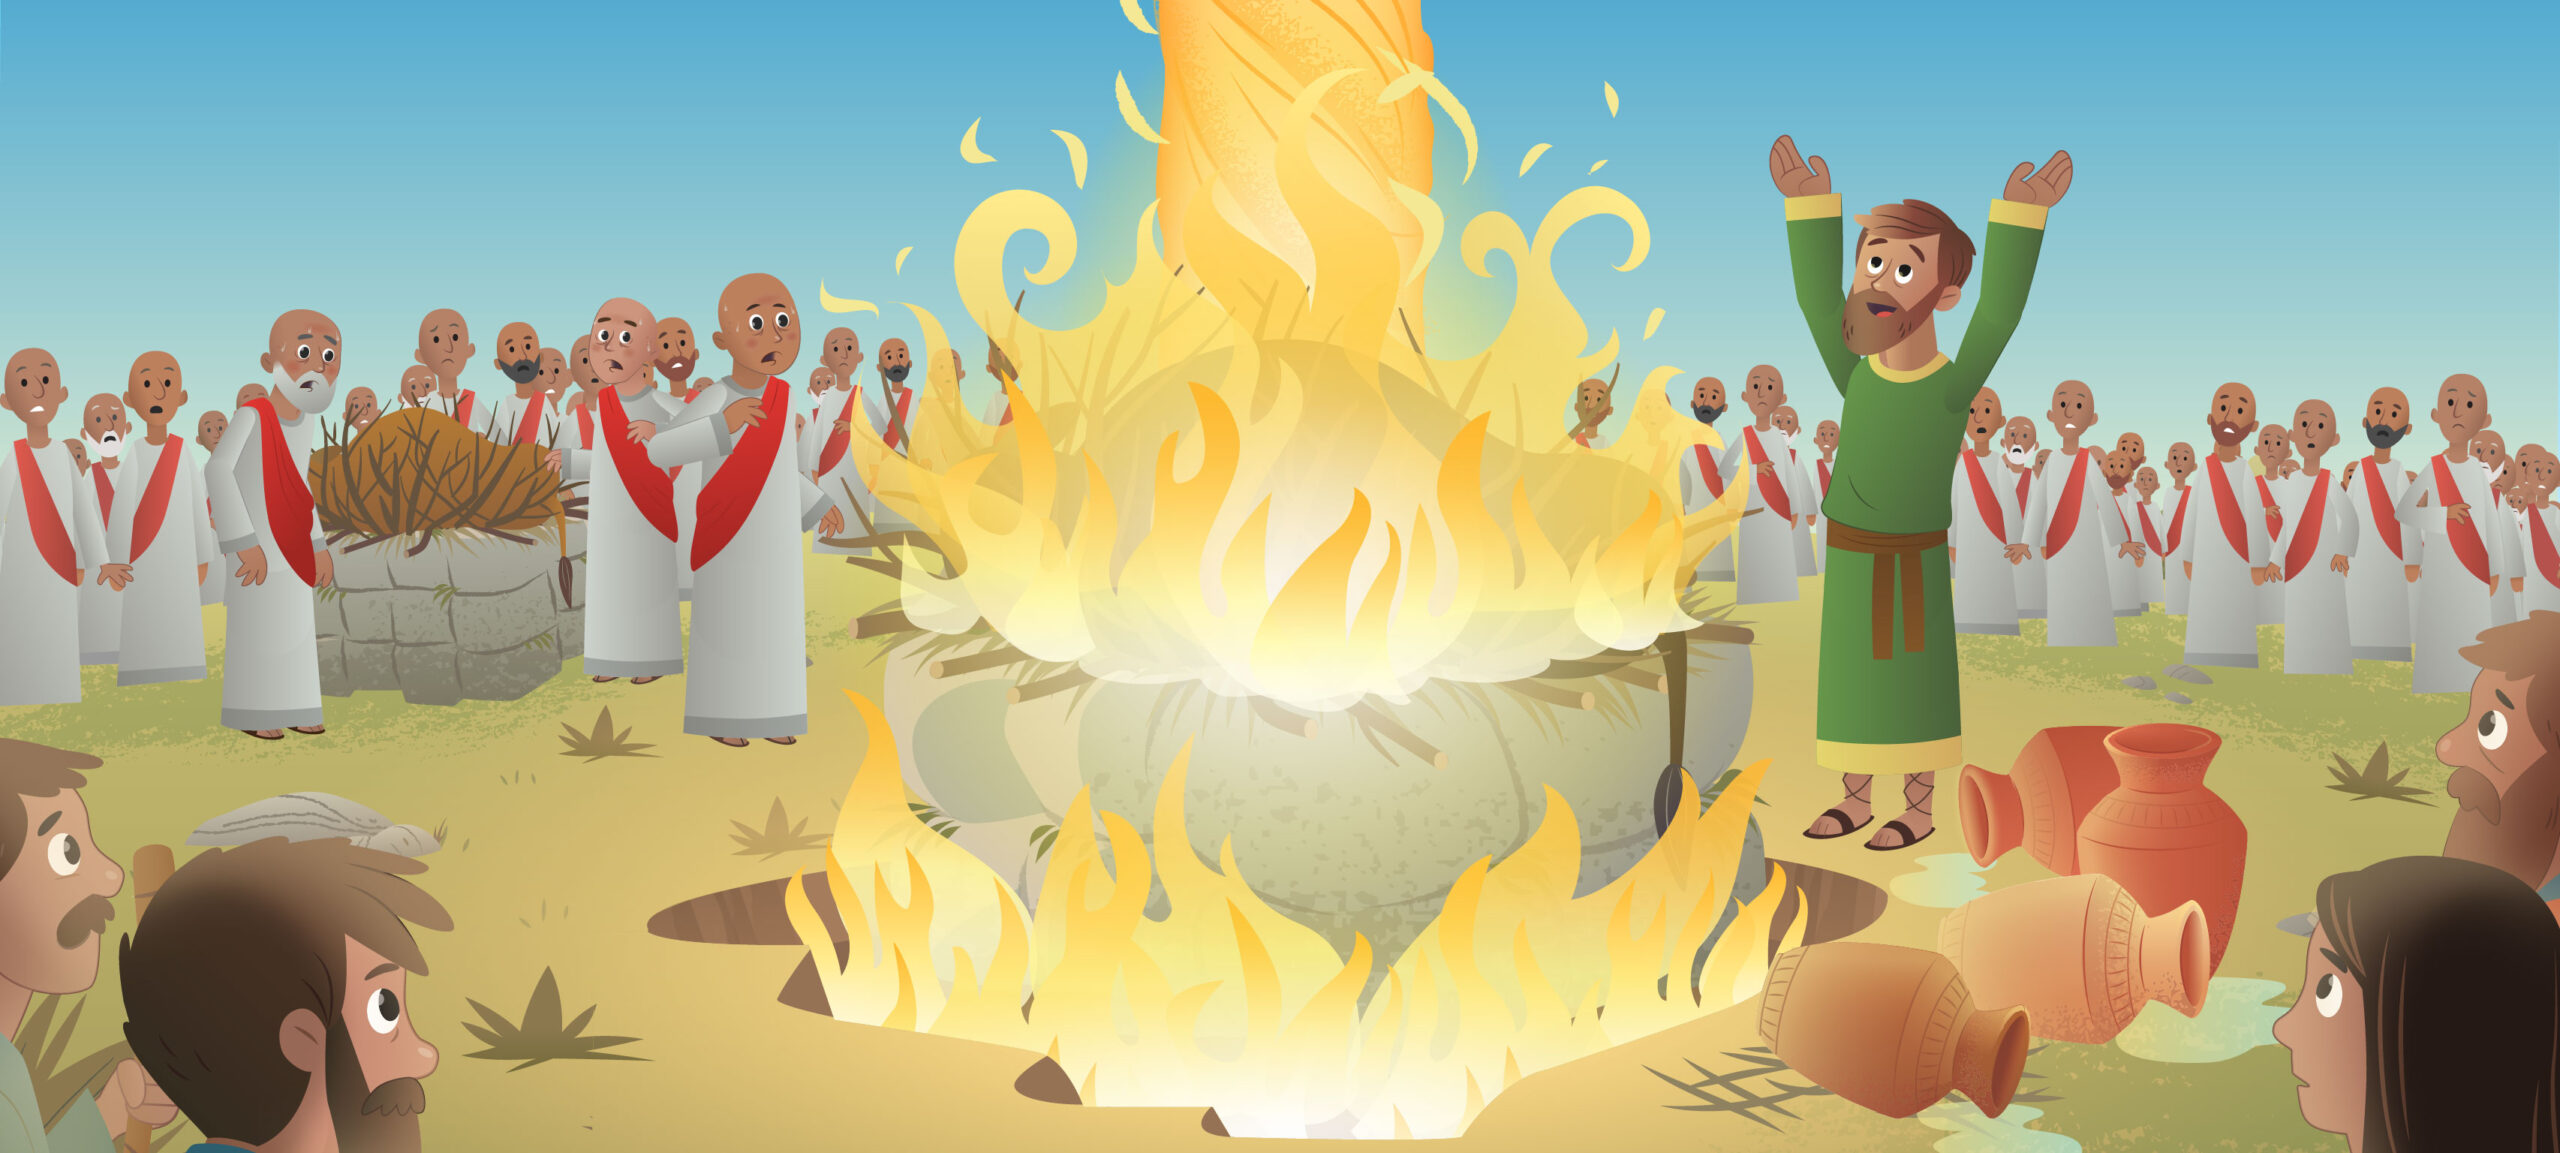 Elijah Bible Story For Kids